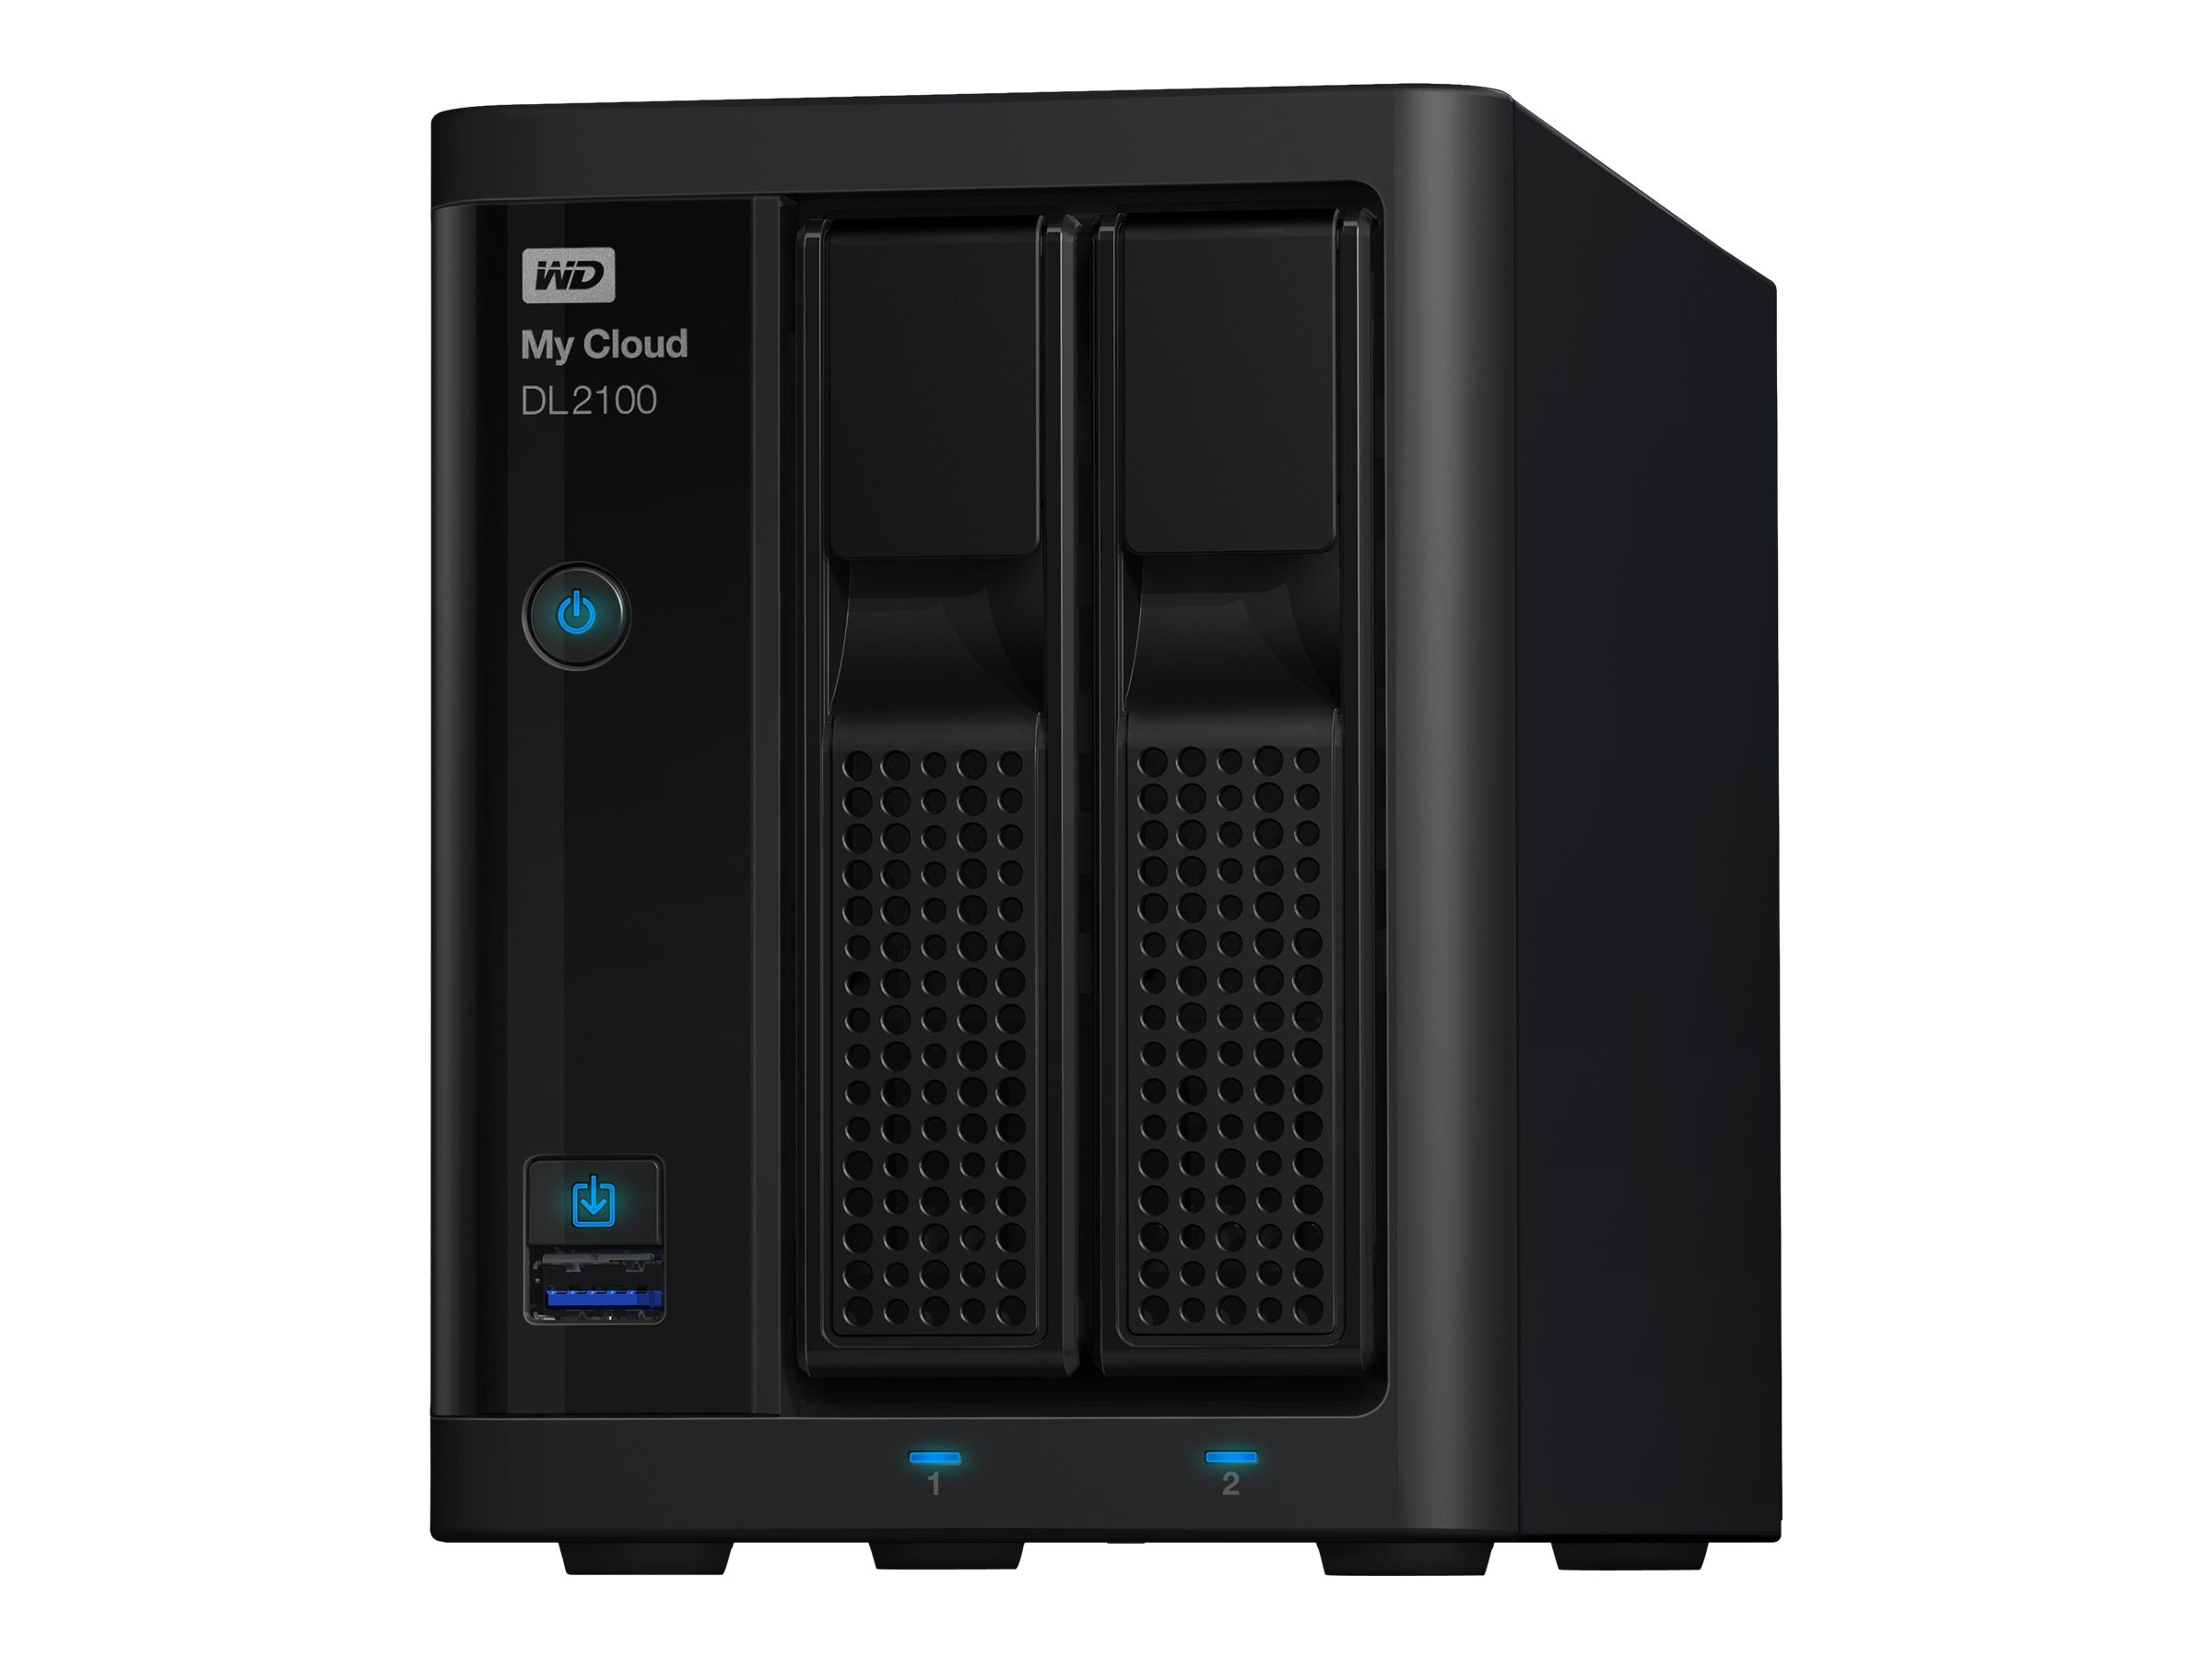 WD My Cloud DL2100 Network Attached Storage - Diskless, WDBBAZ0000NBK-NESN